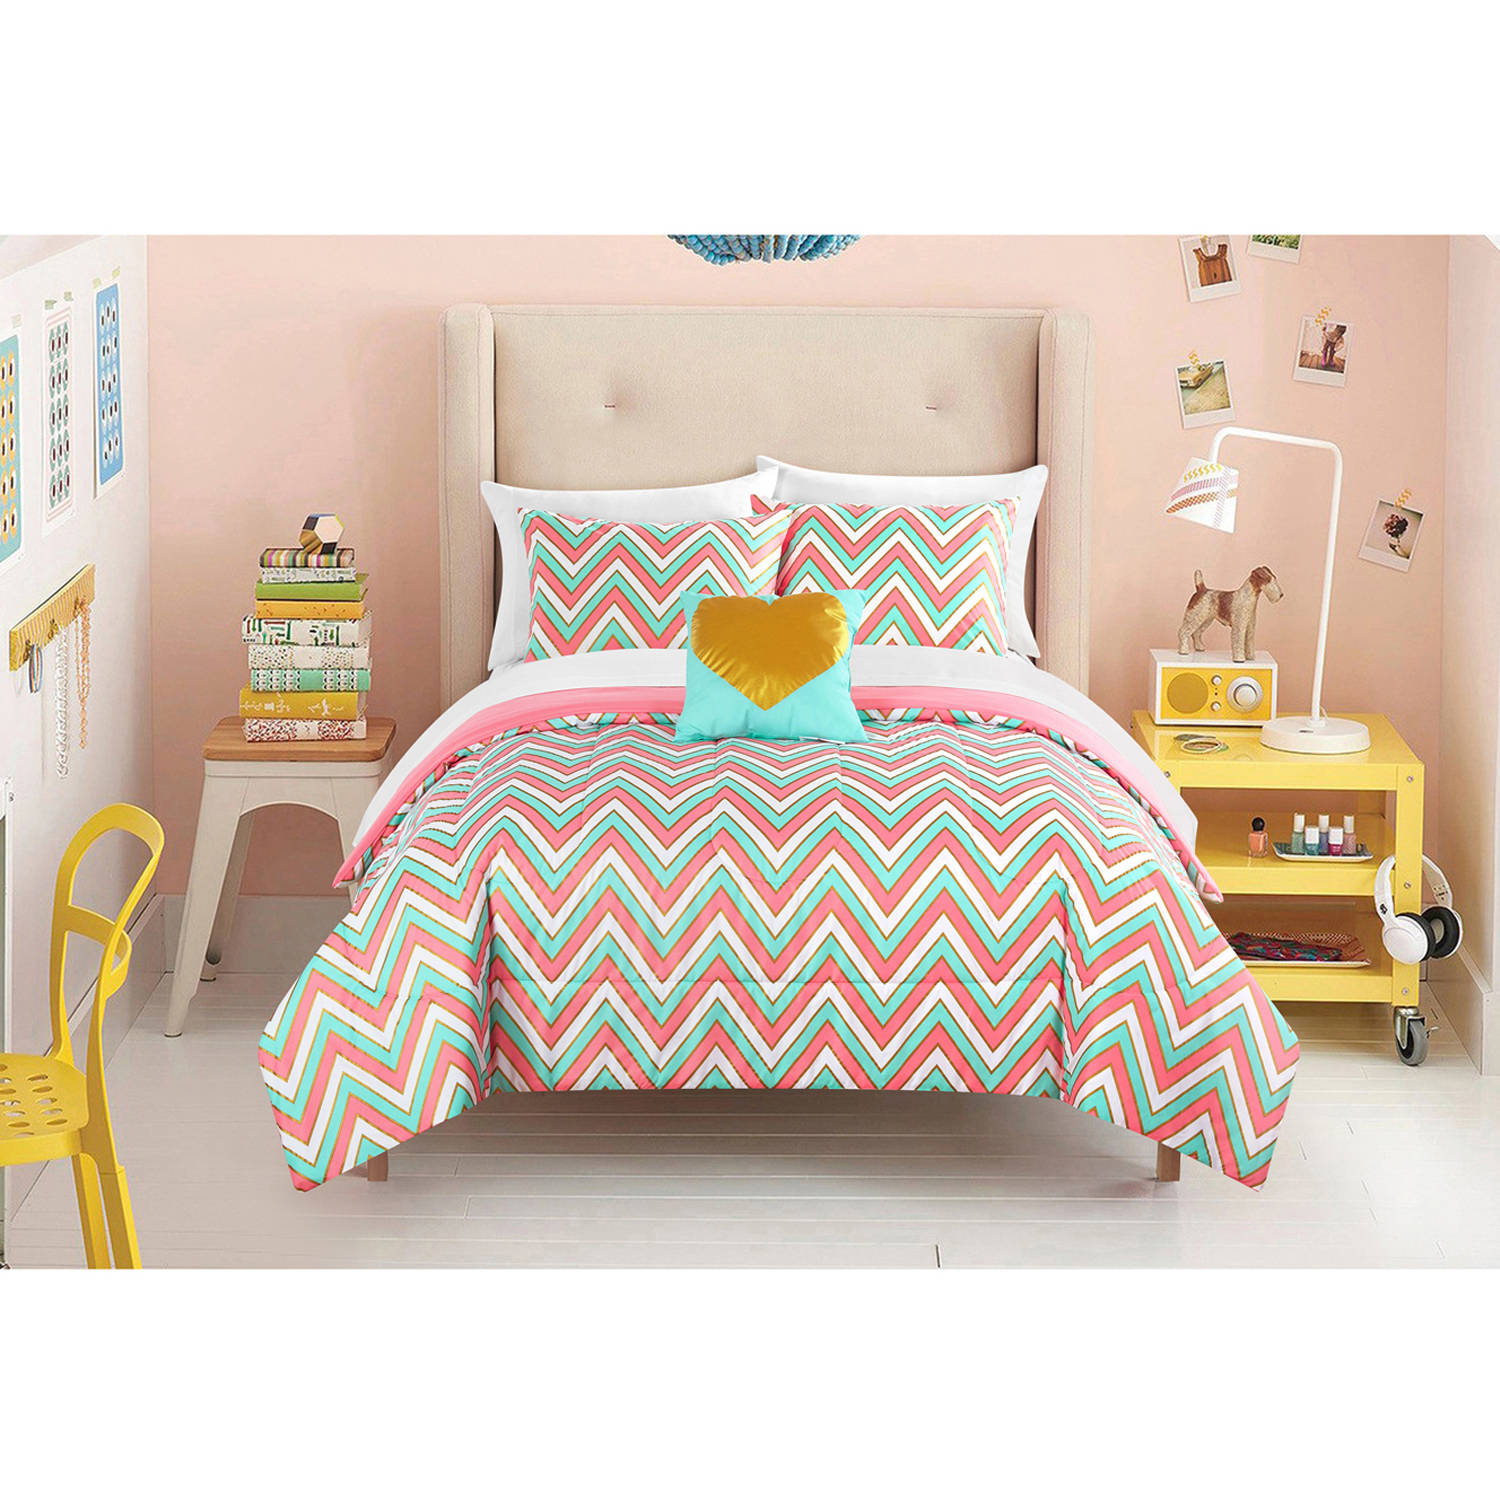 Latitude Gilded Chevron Bed in a Bag Bedding Set